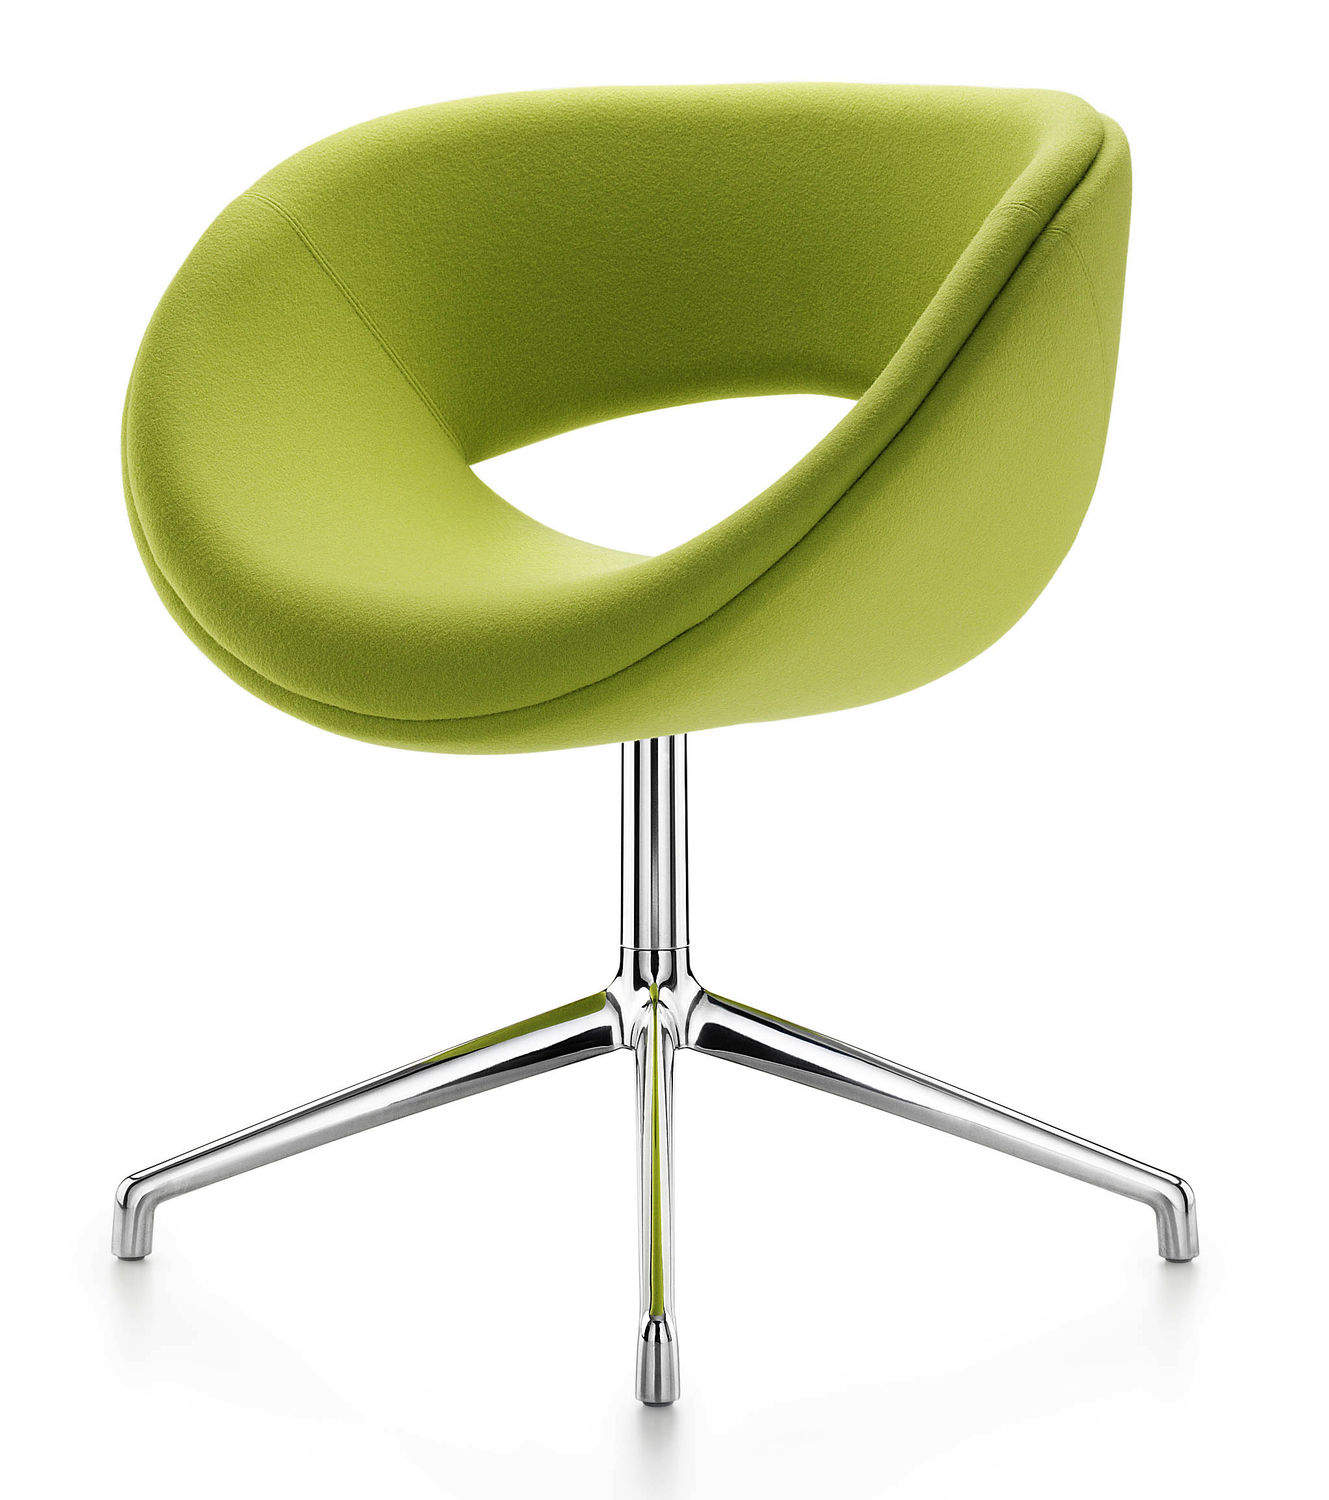 Contemporary Visitor Armchair / Fabric / Chrome Steel / Swivel Pertaining To Chill Swivel Chairs With Metal Base (Image 6 of 20)